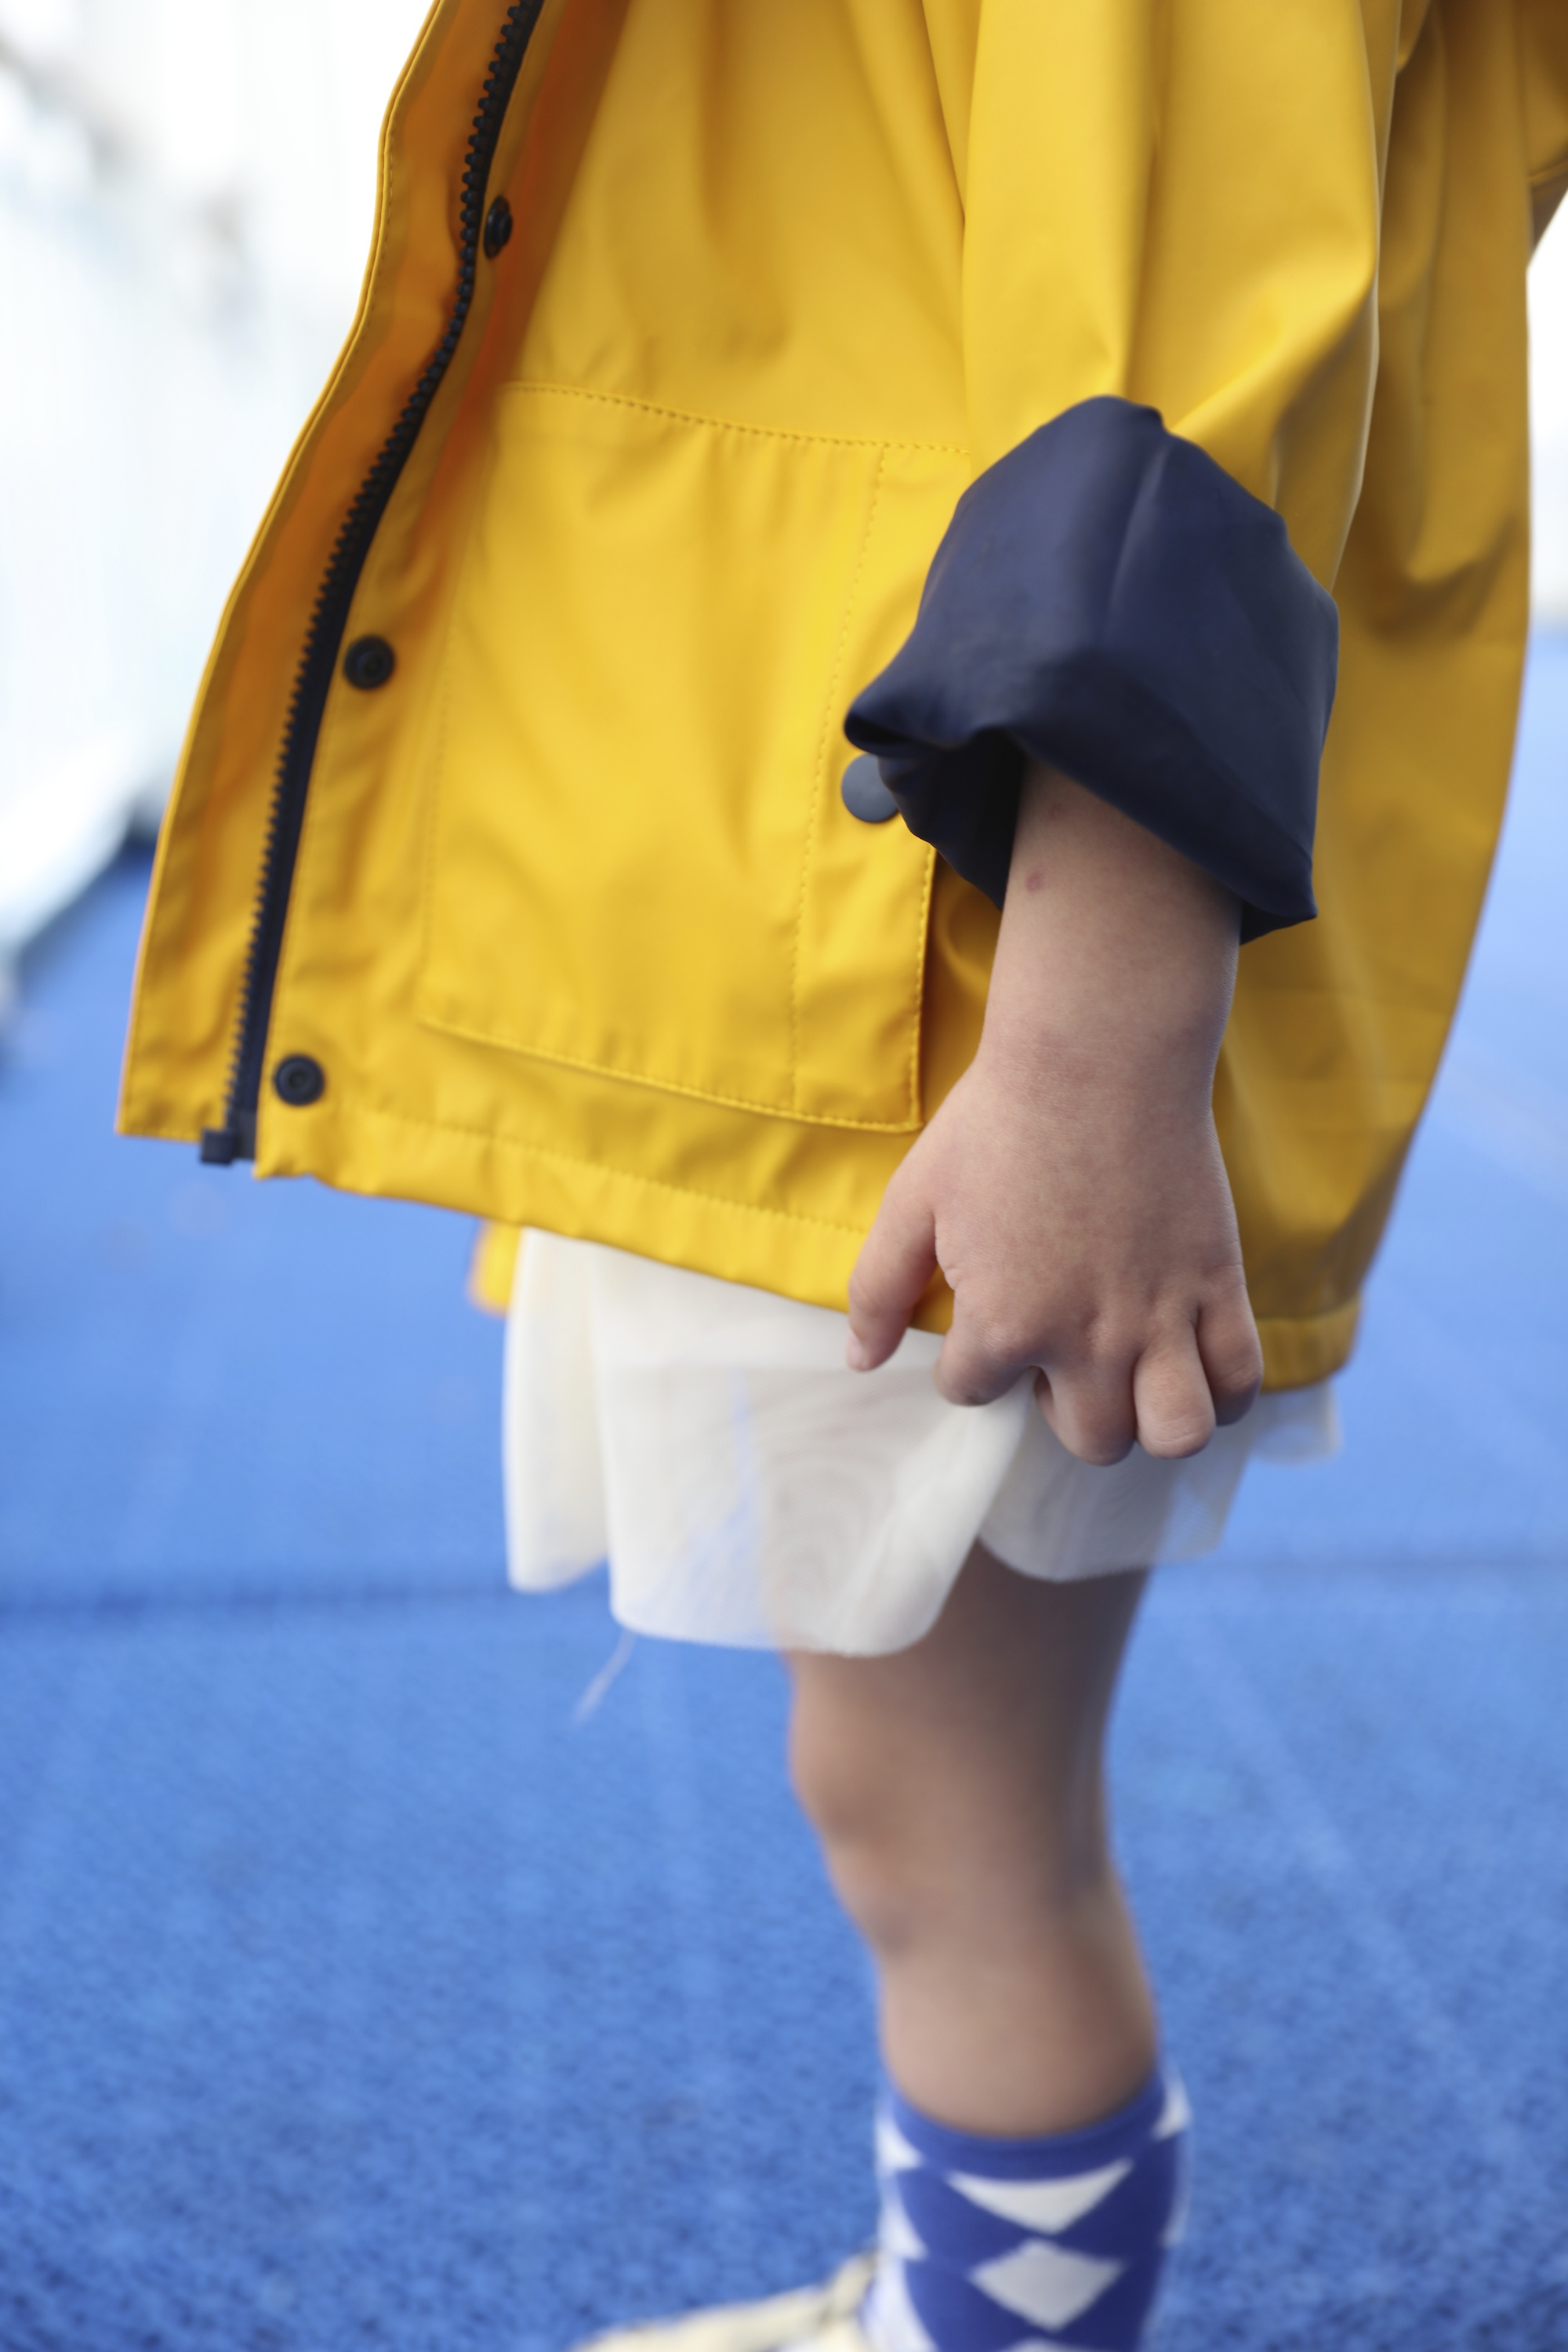 Muddy_pudles_yellow_raincoat_mac_sleeve